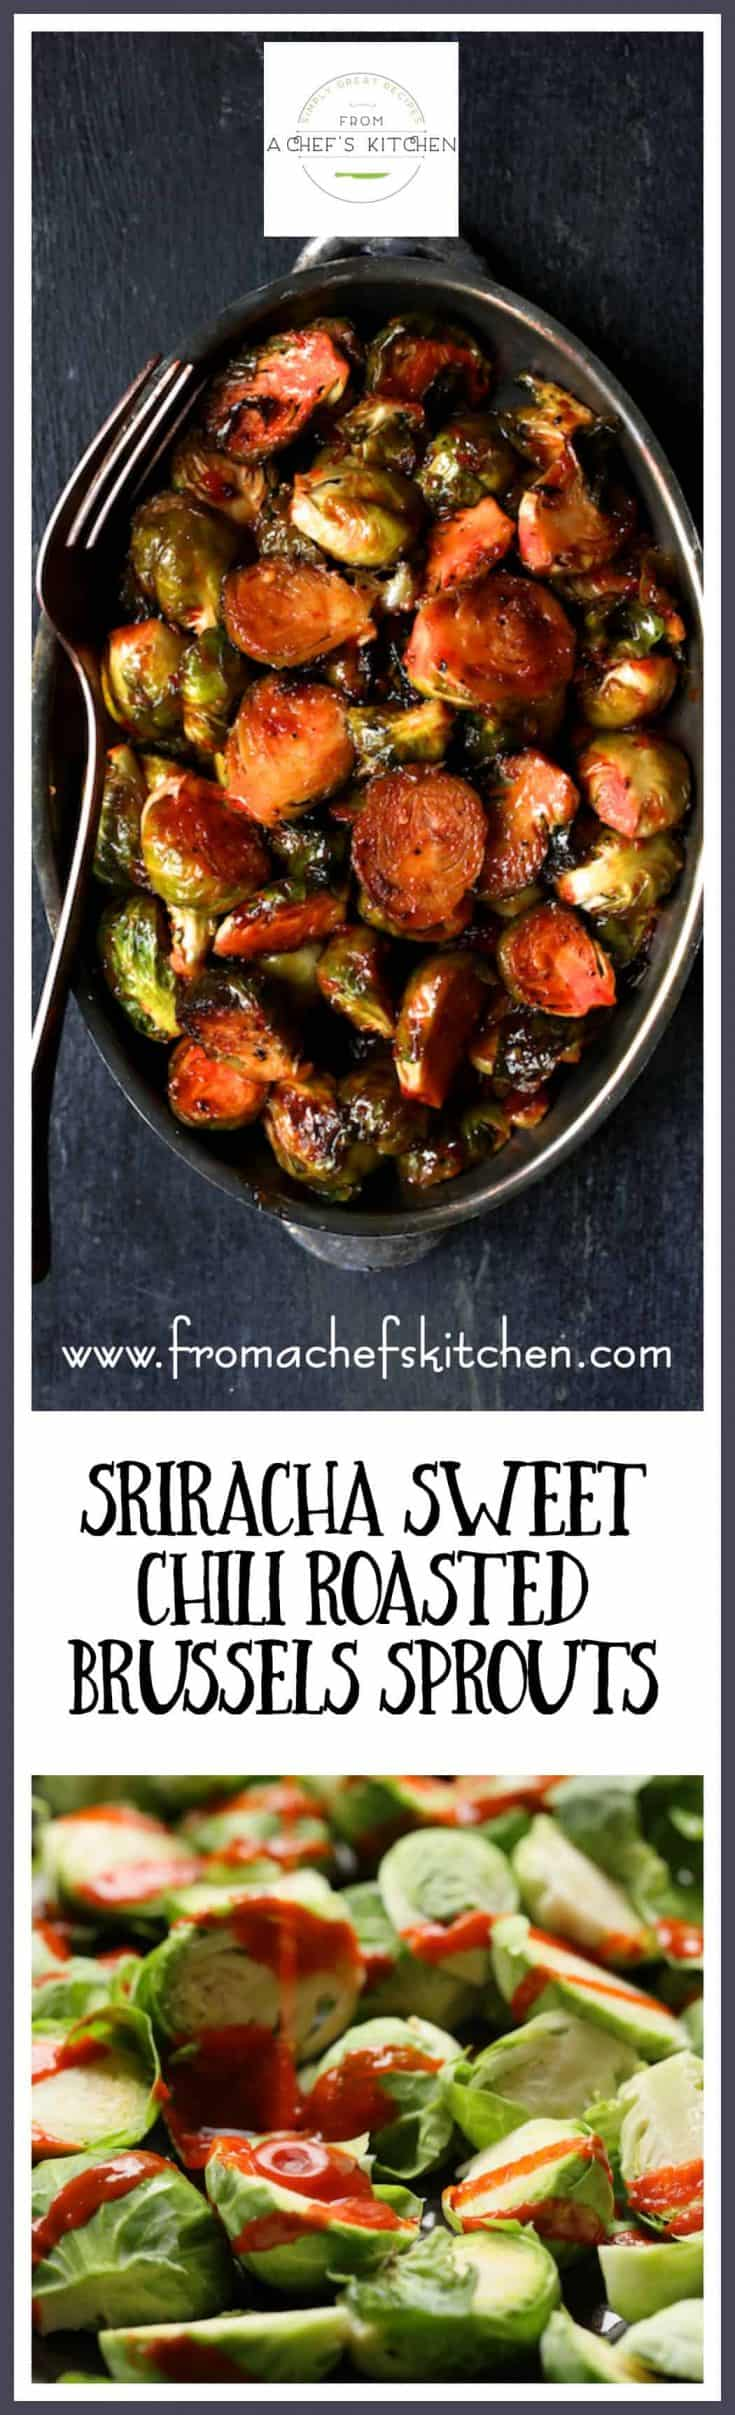 Sriracha Sweet Chili Roasted Brussels Sprouts are a little bit spicy, a little bit sweet and a whole lot wonderful! #brusselssprouts #sriracha #sweetchili #roastedbrusselssprouts